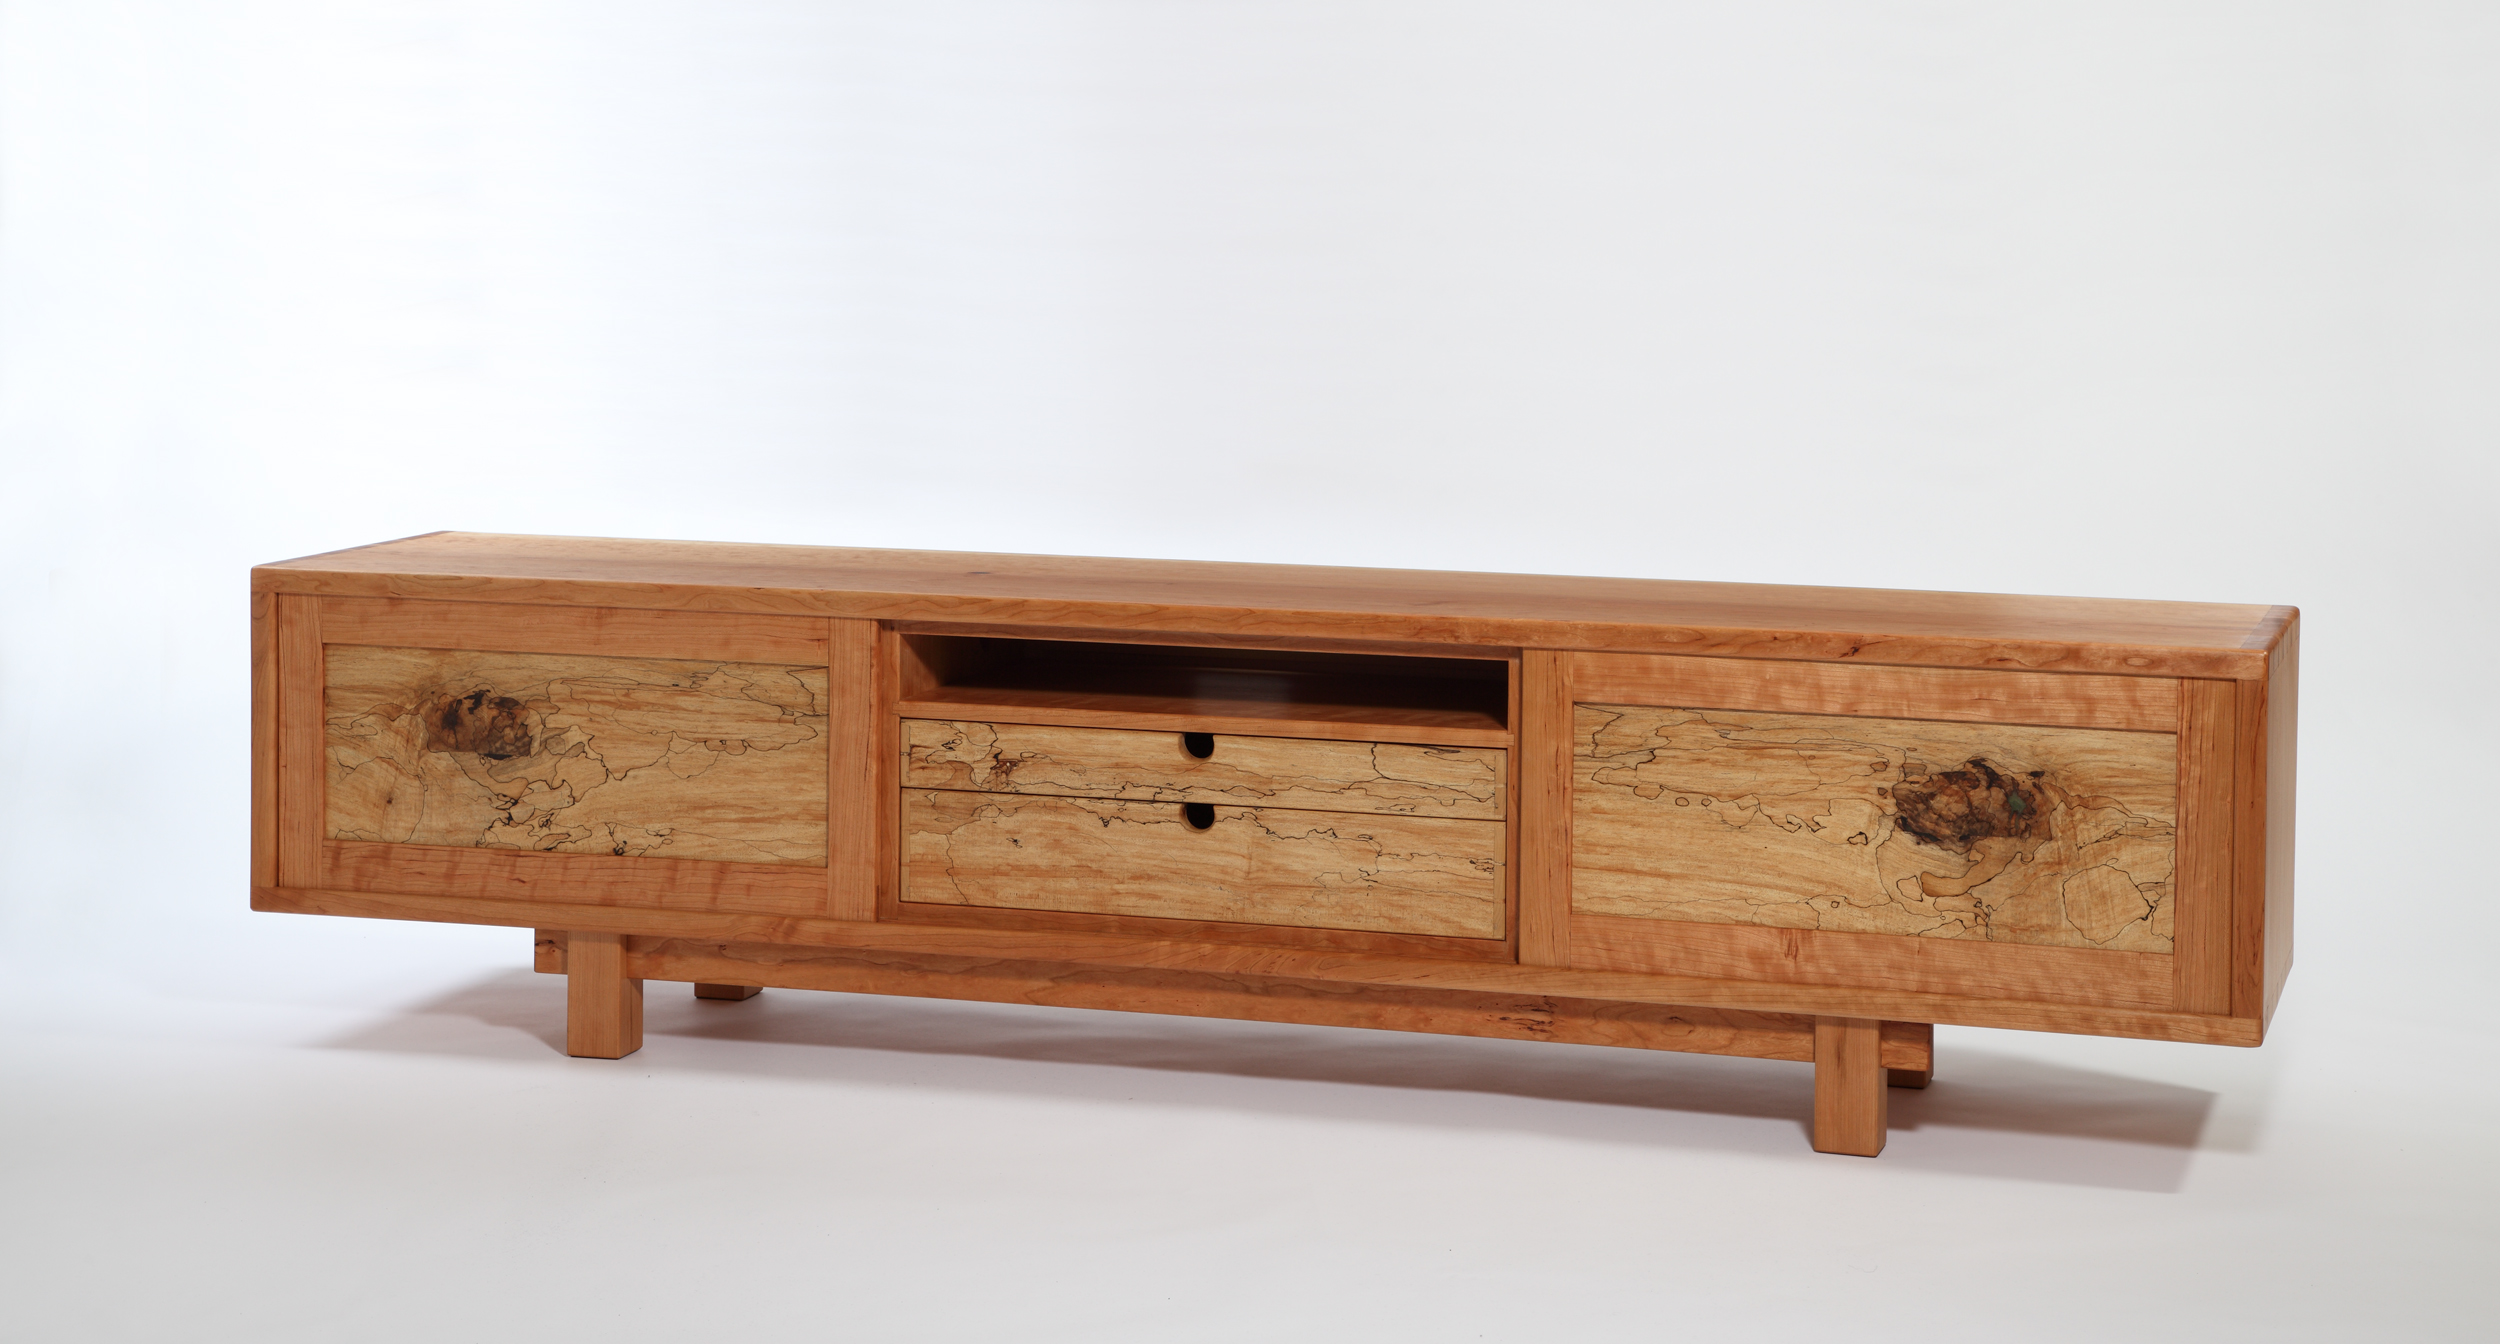 media console in cherry and spalted maple- 92